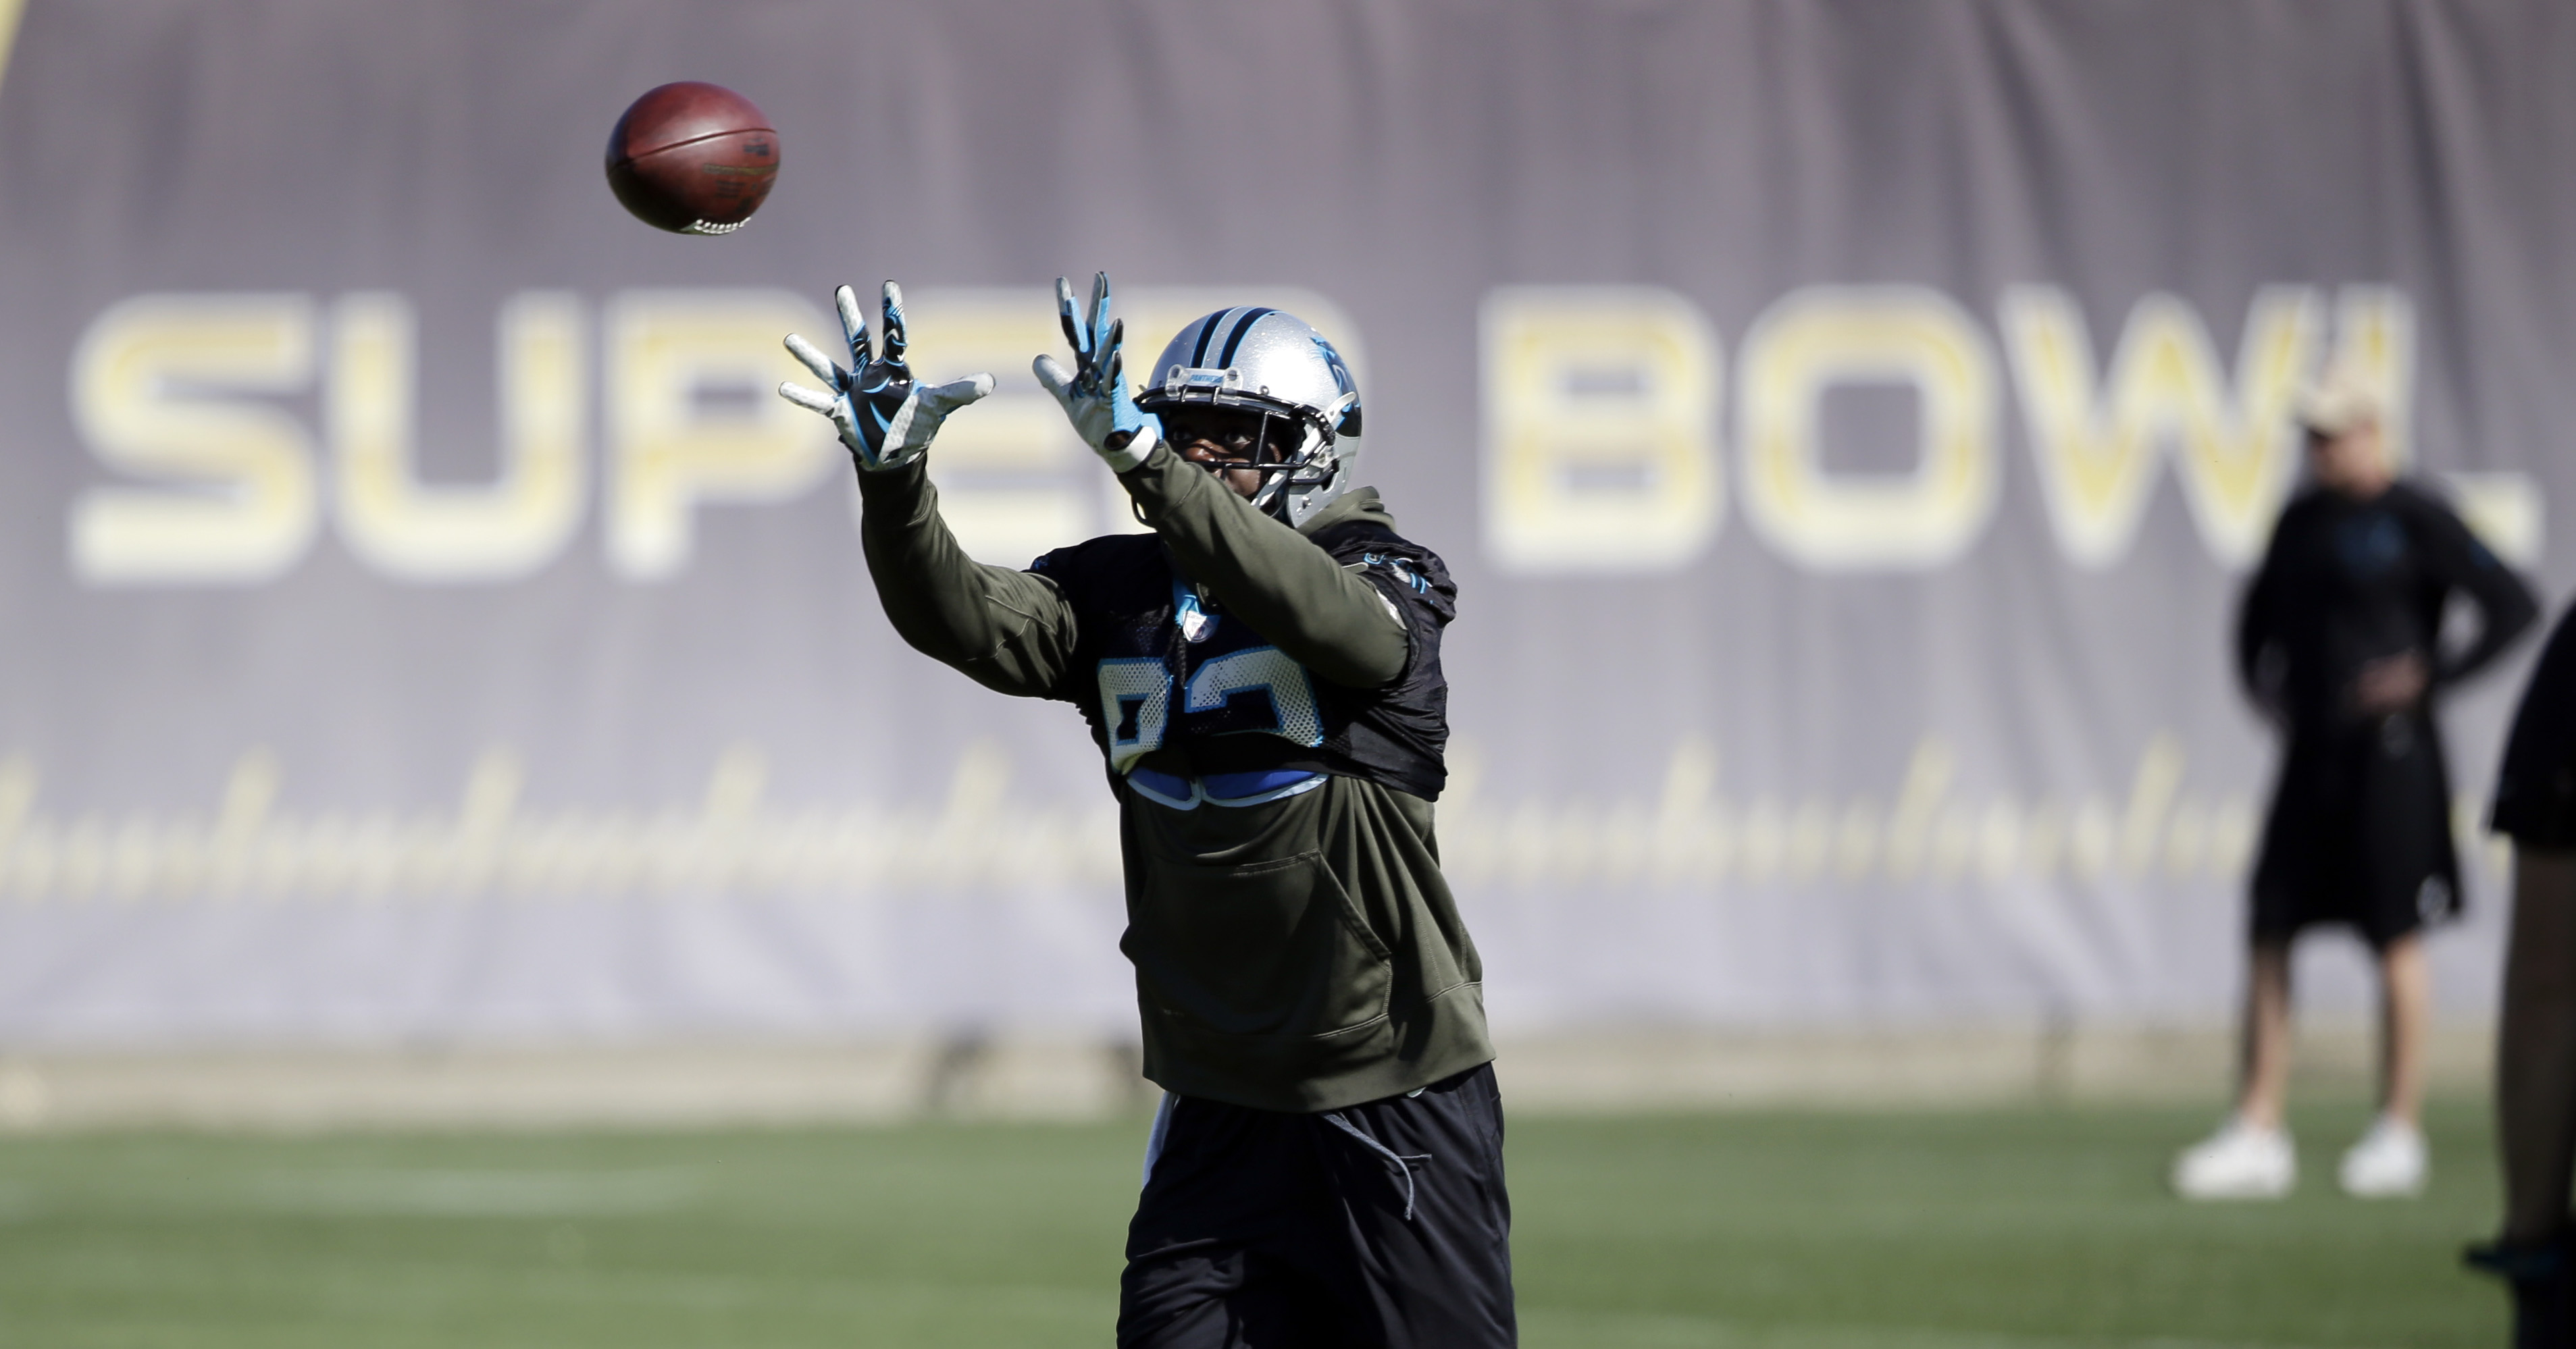 Carolina Panthers wide receiver Jerricho Cotchery makes a catch during practice in preparation for the Super Bowl 50 football game Thursday Feb. 4, 2016 in San Jose, Calif. (AP Photo/Marcio Jose Sanchez)